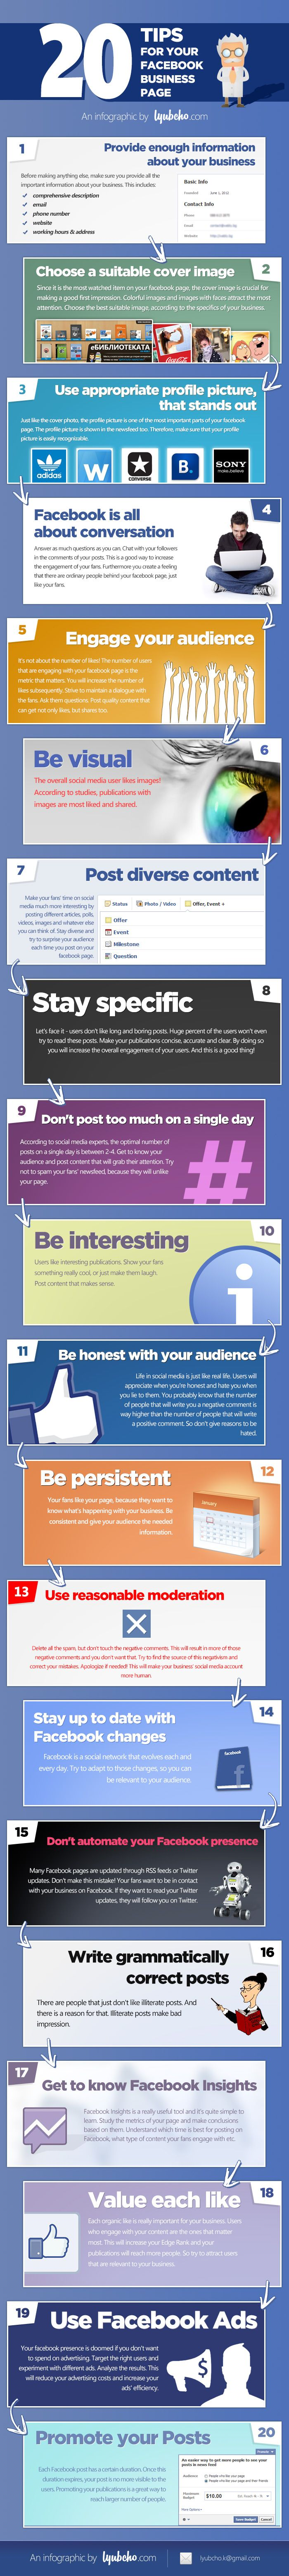 20 Vital Success Tips For Your Facebook Business Page #infographic